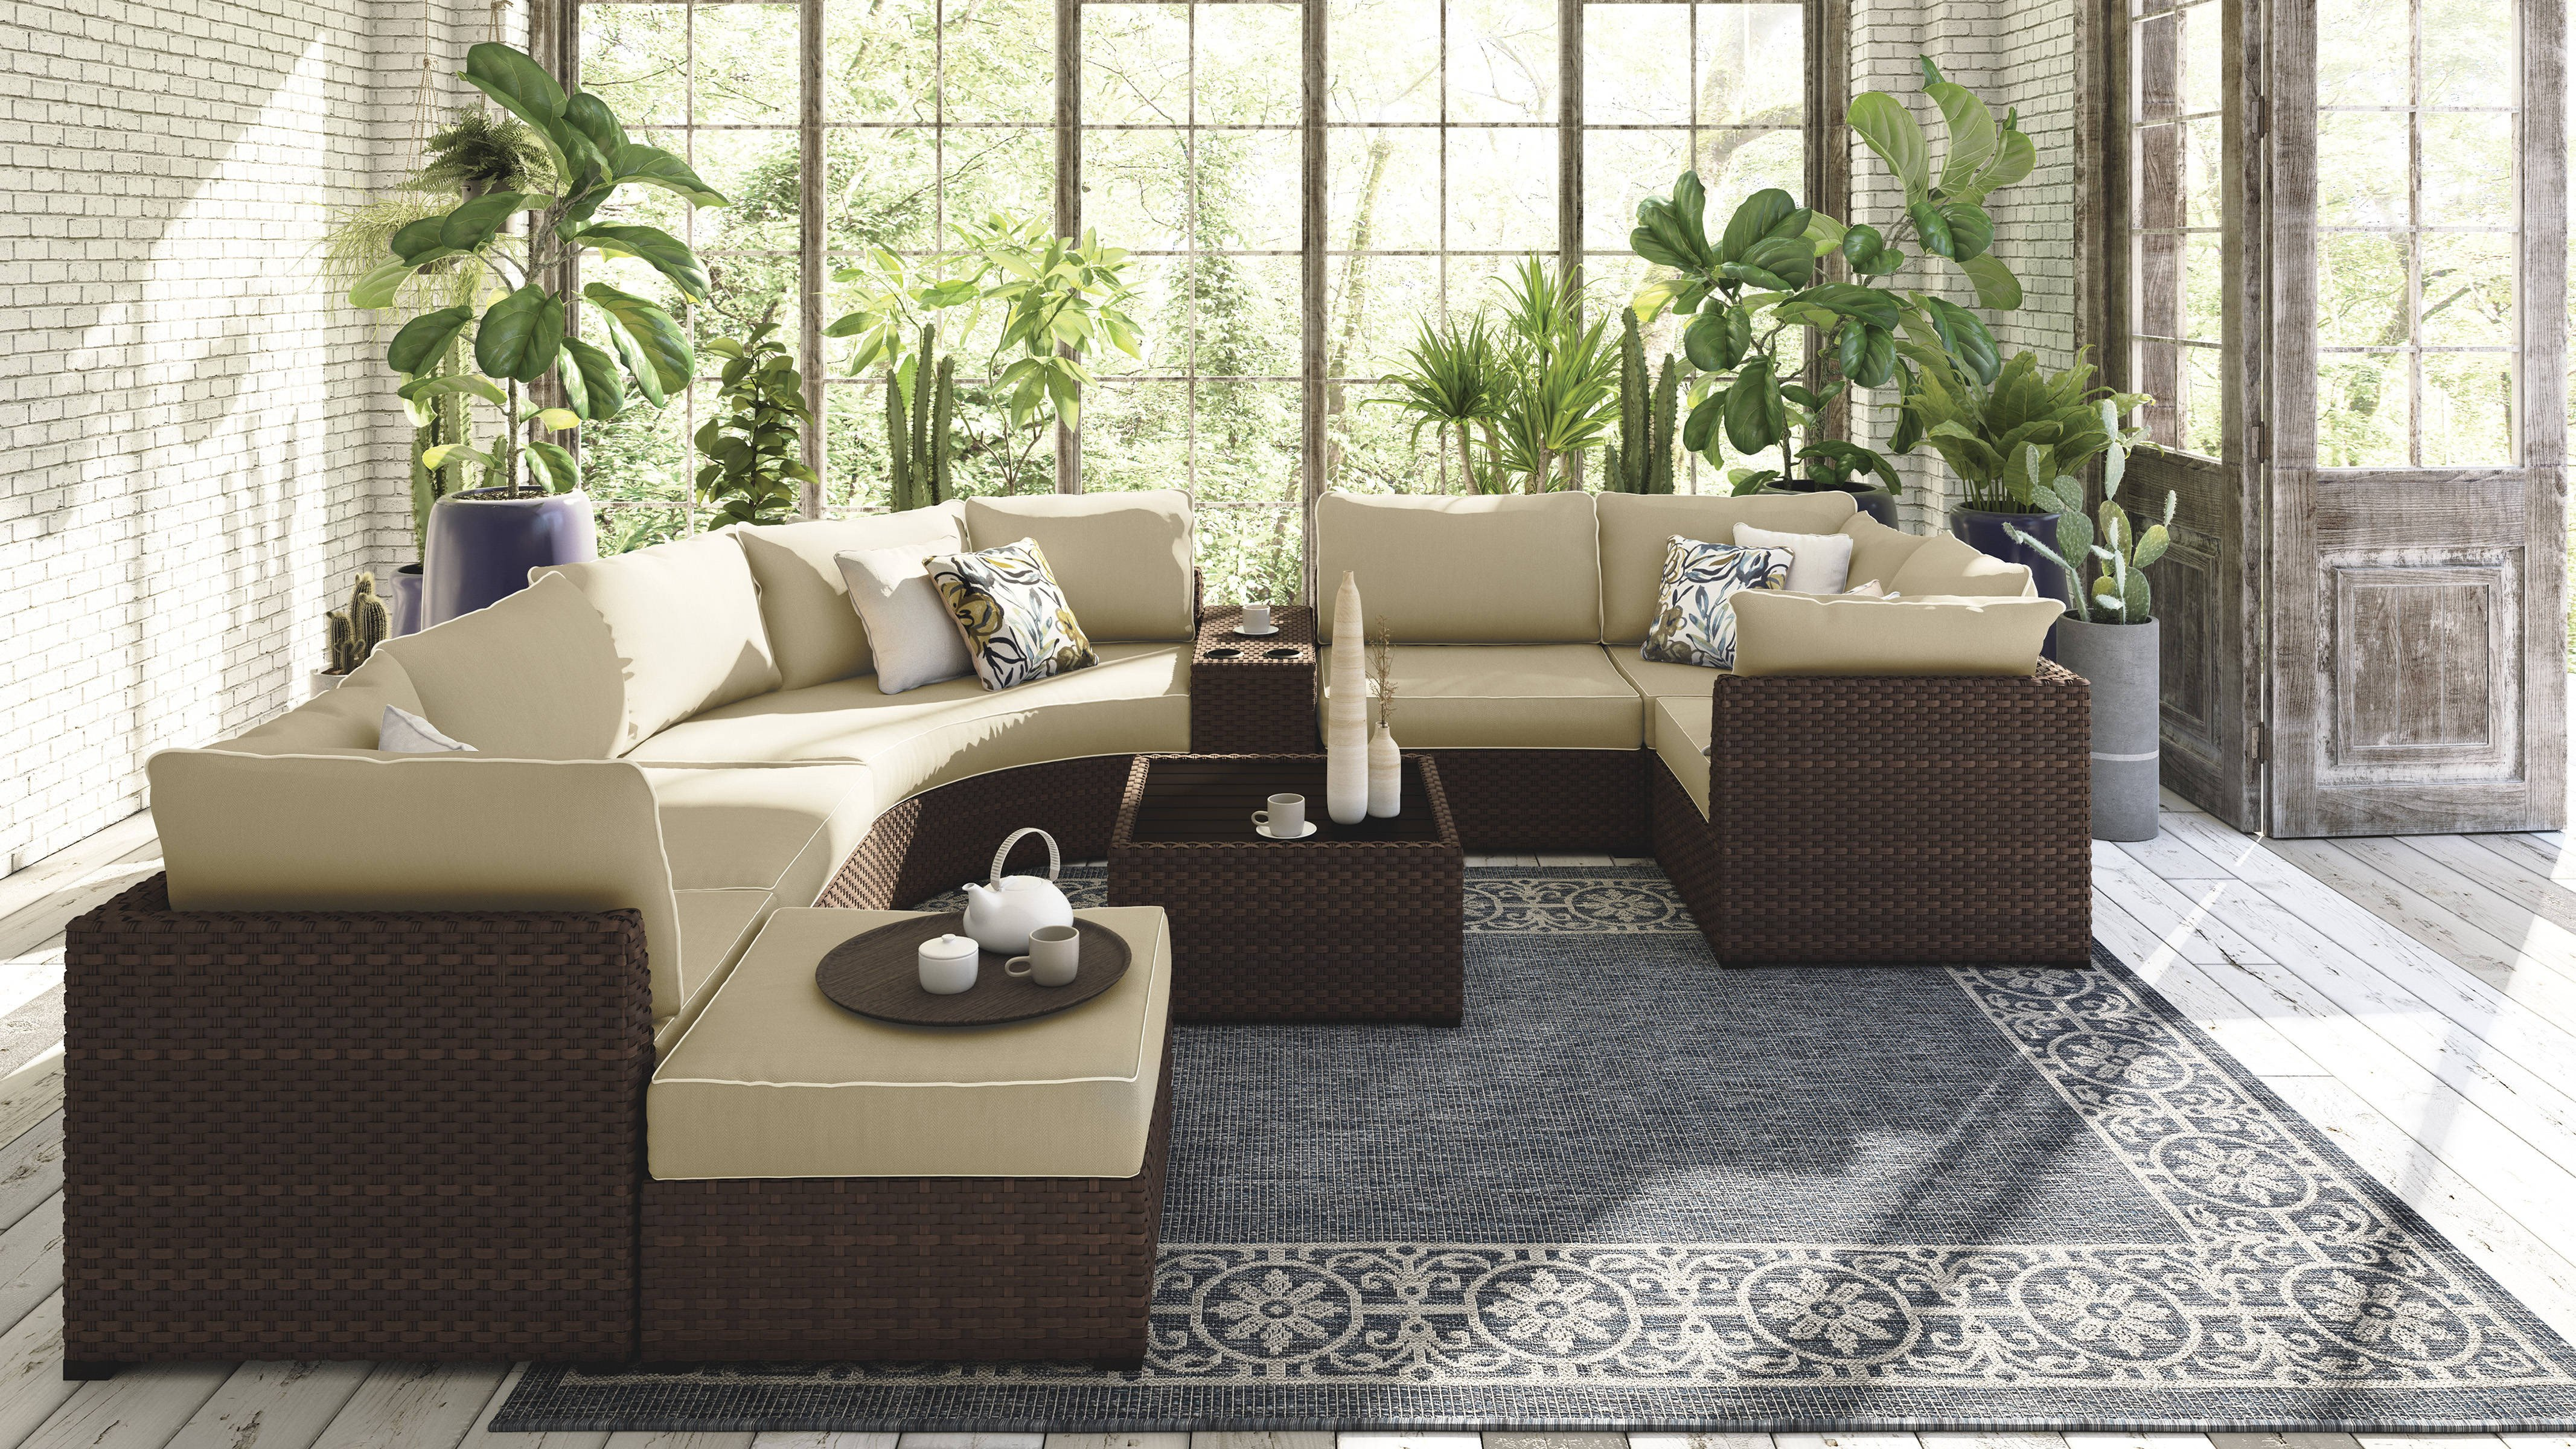 Ashley Furniture Kids Bedroom New ashley Furniture Spring Ridge Beige 9pc Outdoor Sectional